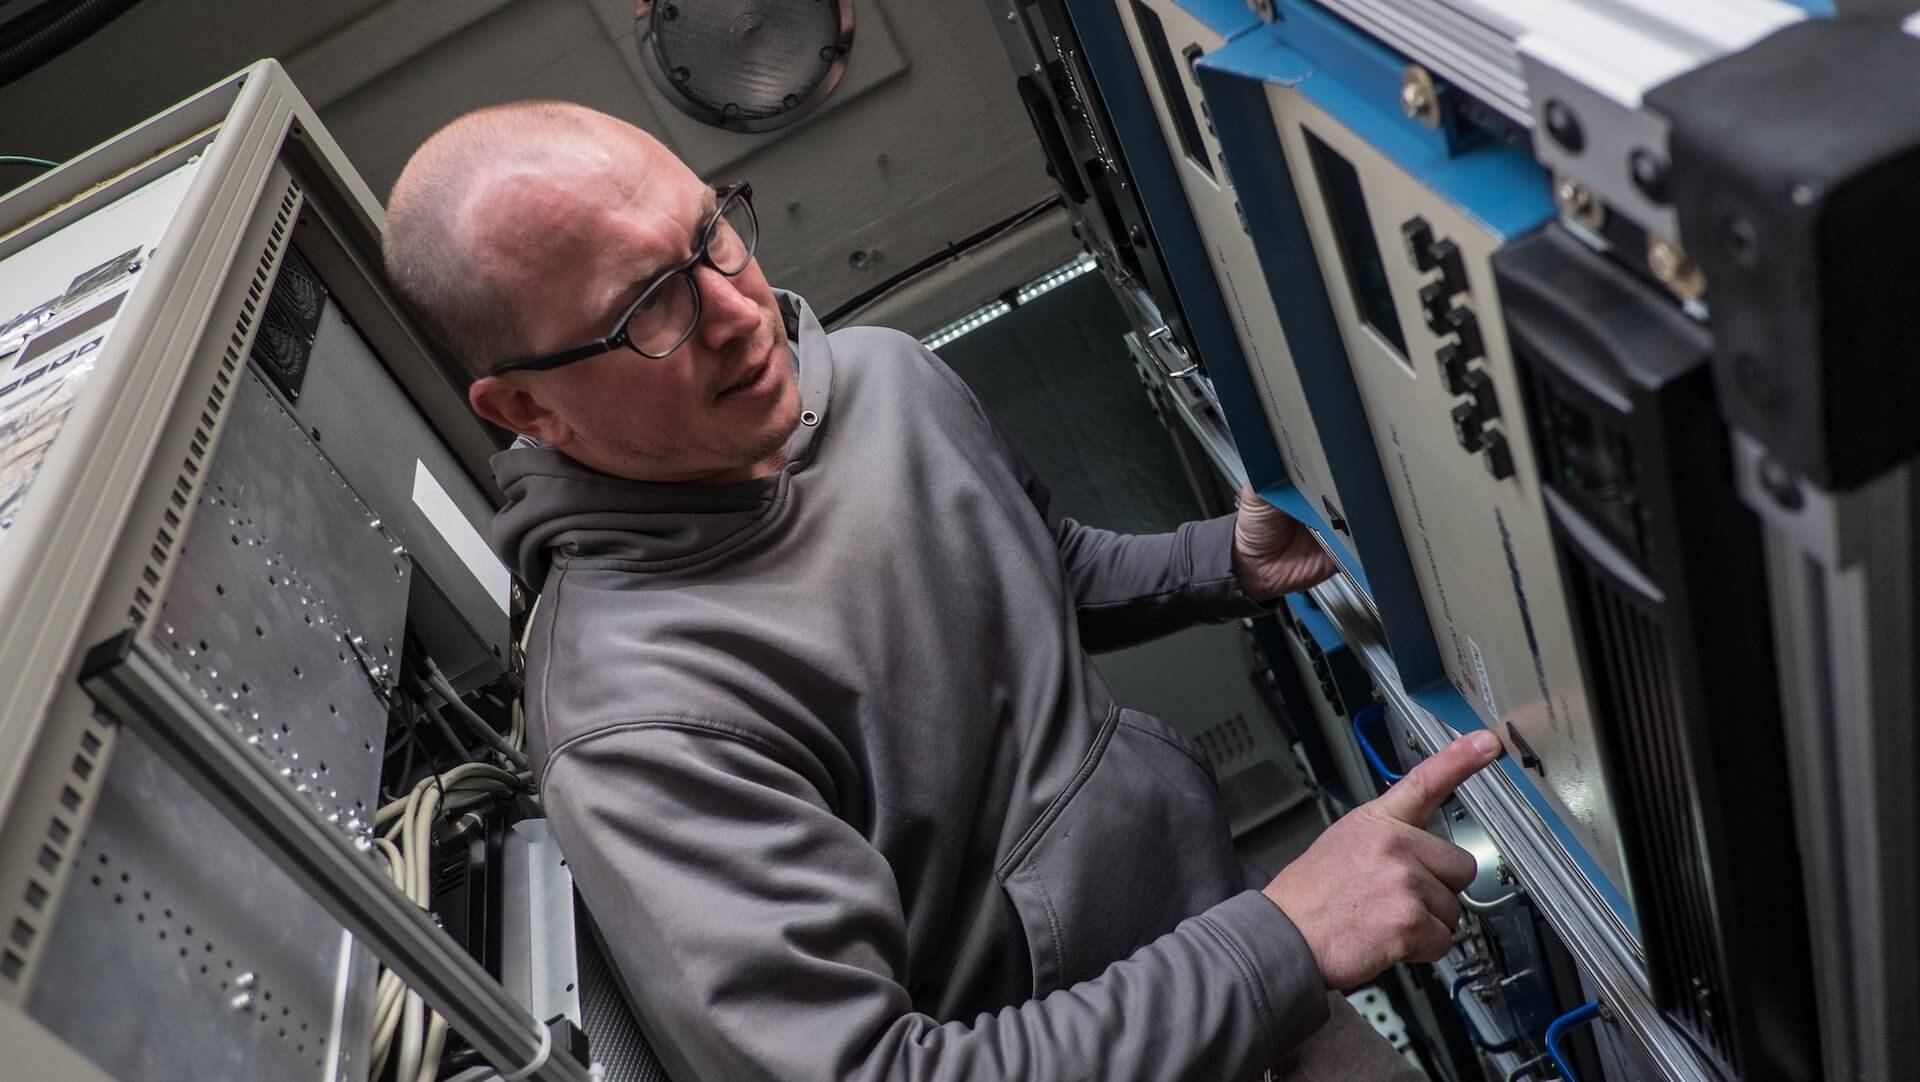 Rice researcher Will Wallace prepares electronic monitors for a day on the road. (Credit: Jeff Fitlow/Rice University)